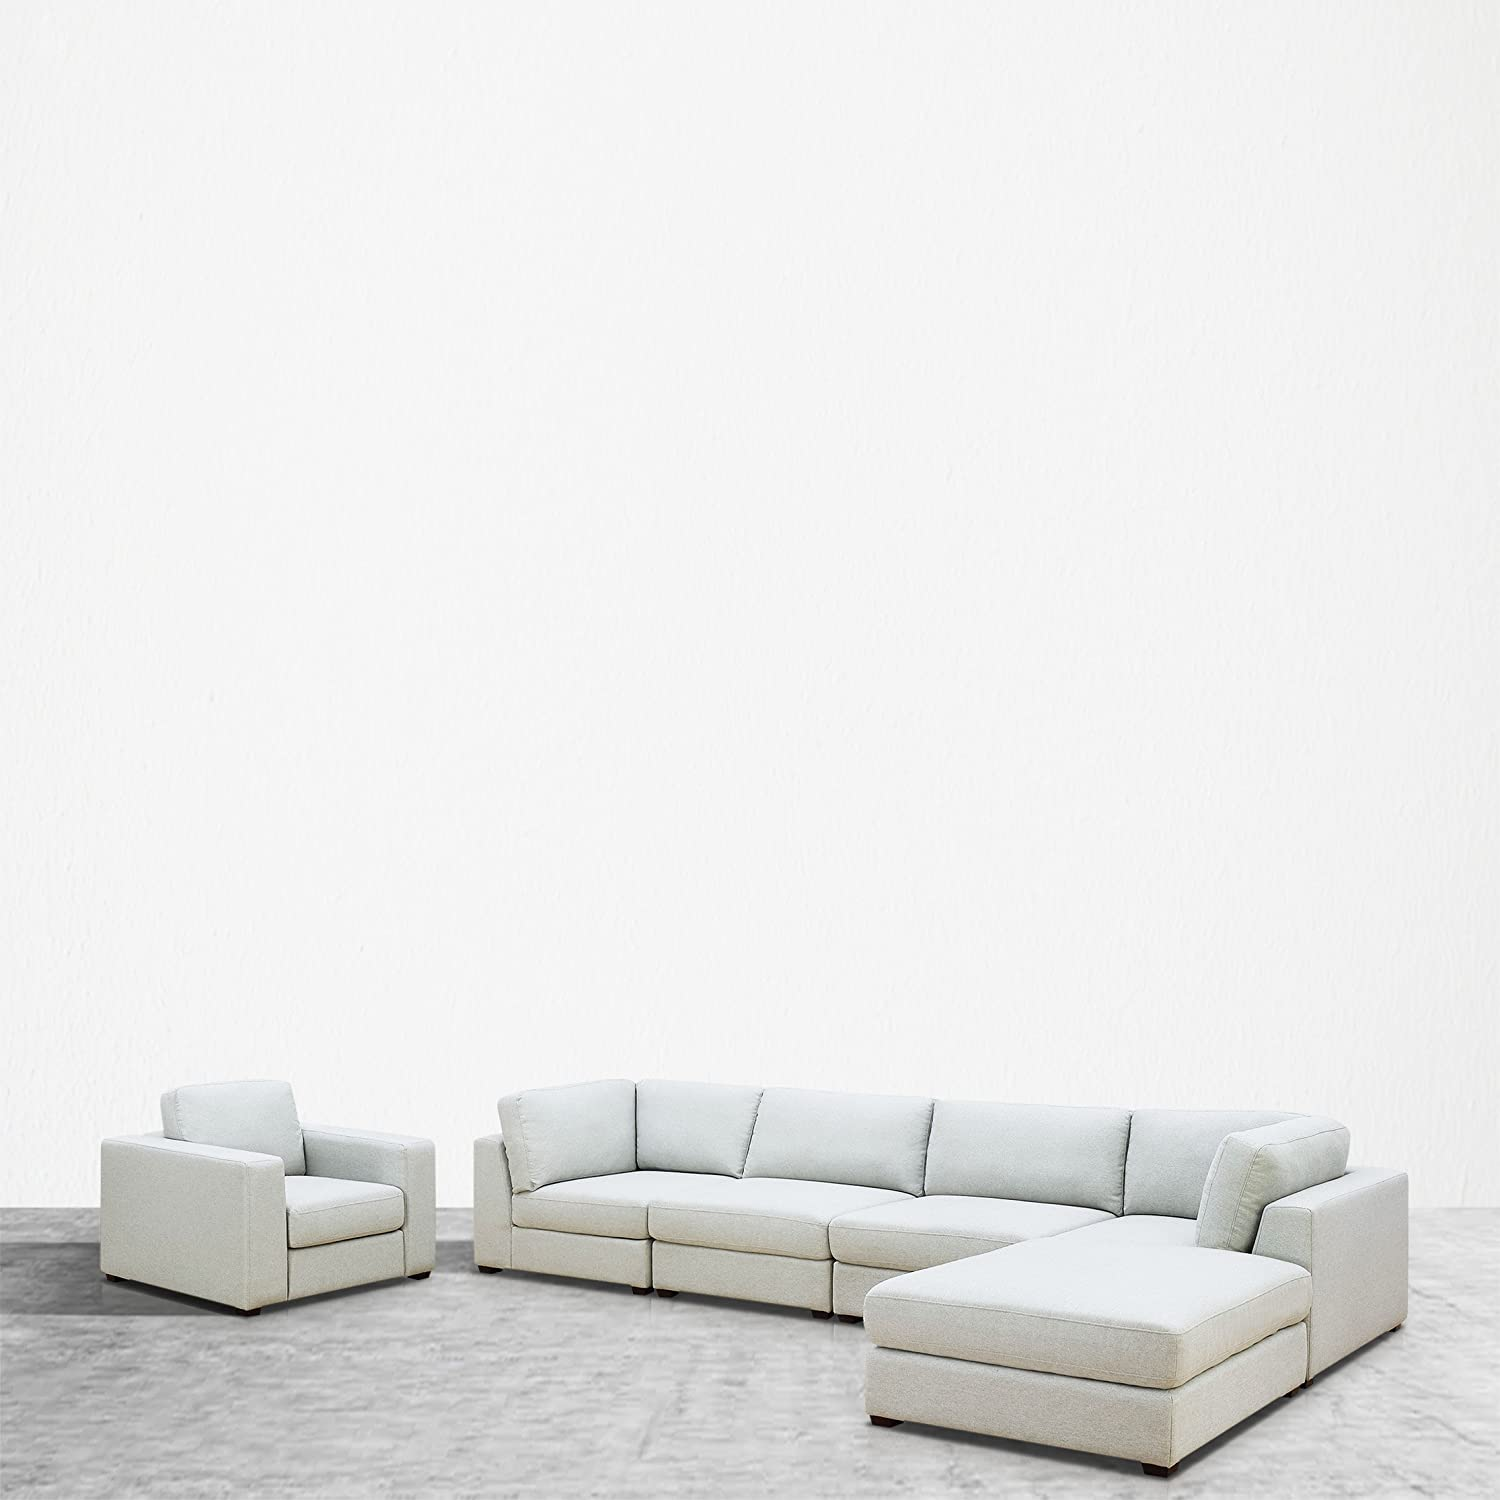 UrbanFurnishing.net Reed 6-Piece Modular Customizable and Reconfigurable Deep Seating Sofa Sectional